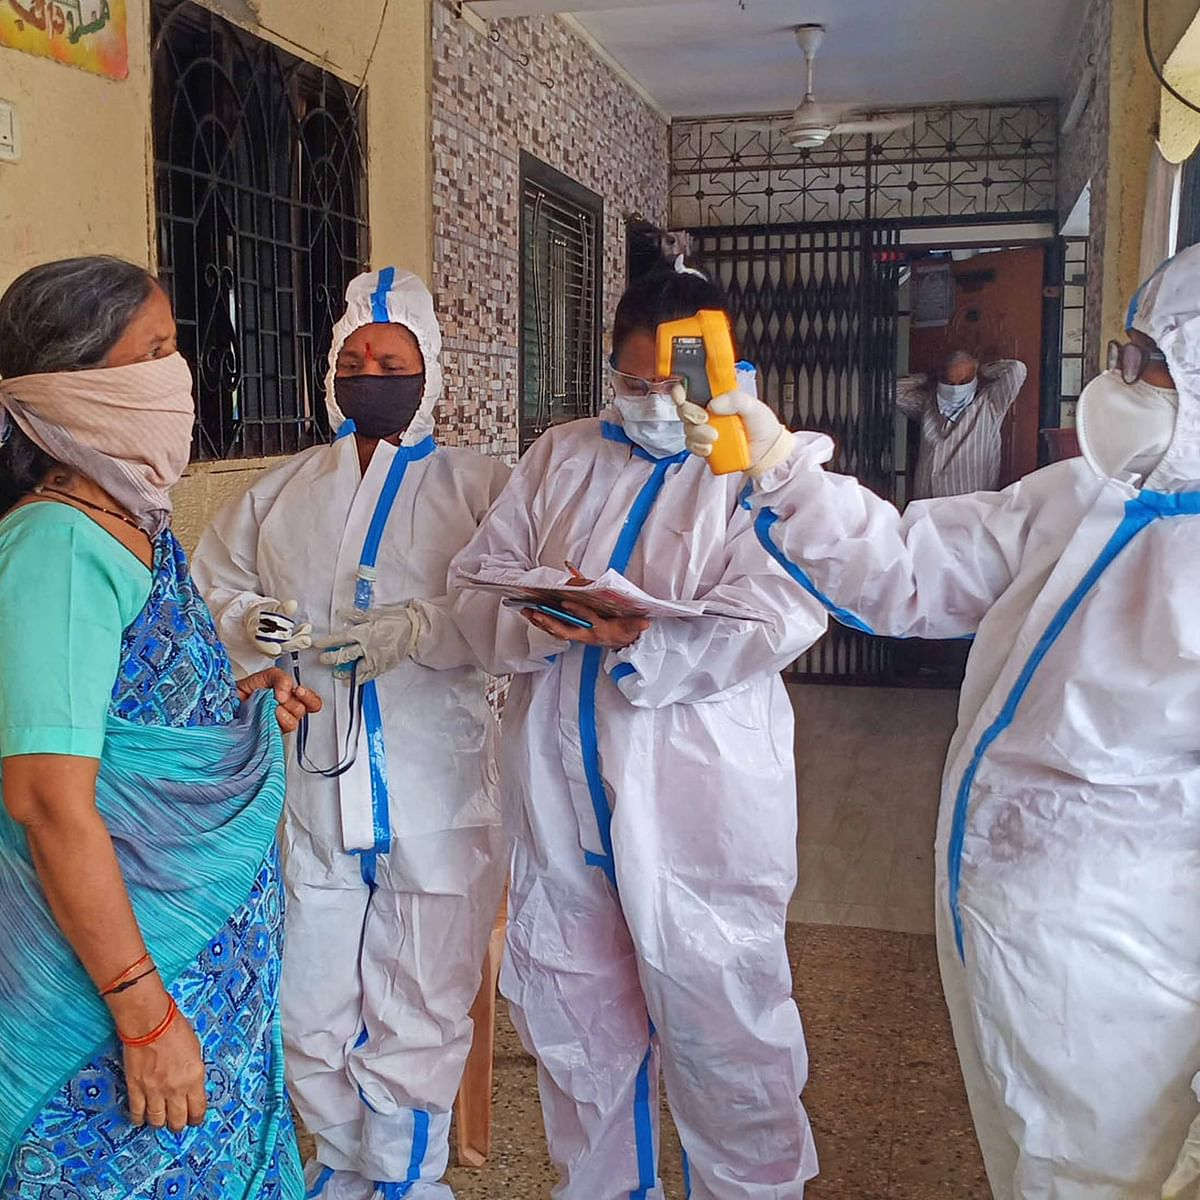 Coronavirus in Pune: Good news Punekars, positive cases to drop significantly by end of August